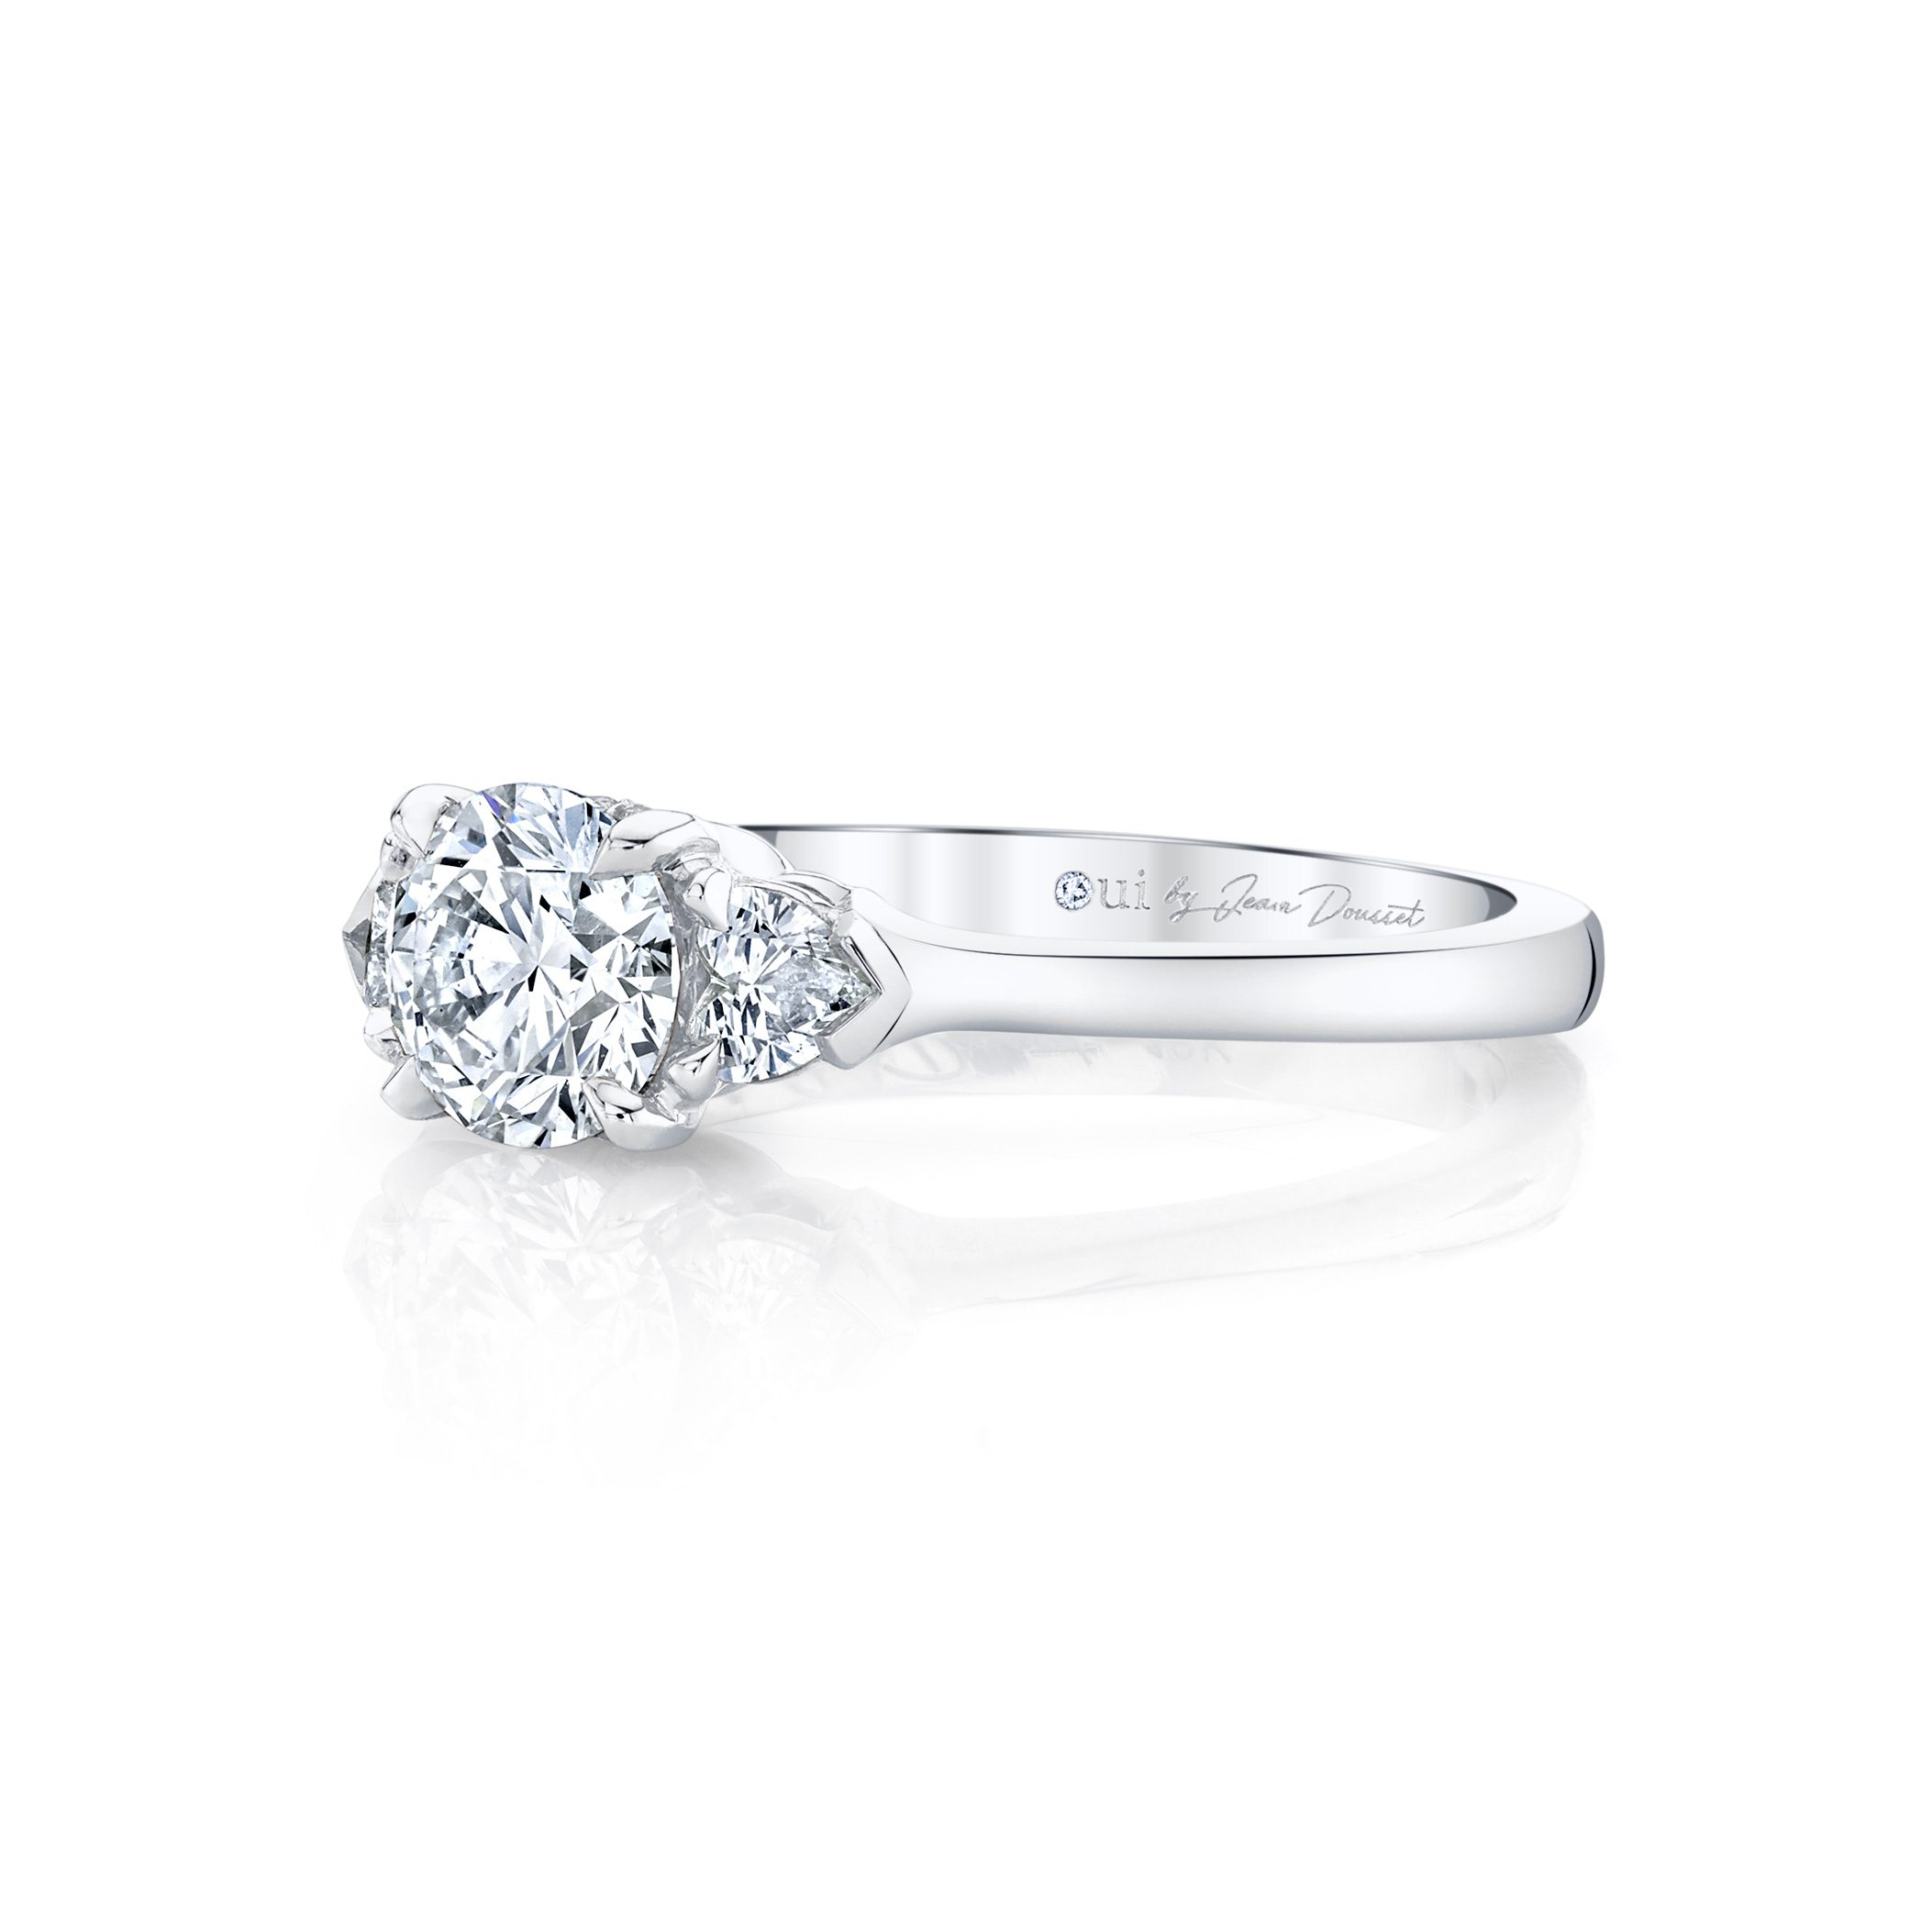 Claire Round Brilliant Three Stone Engagement Ring with heart-shaped diamond side stones in 18k White Gold Side View by Oui by Jean Dousset